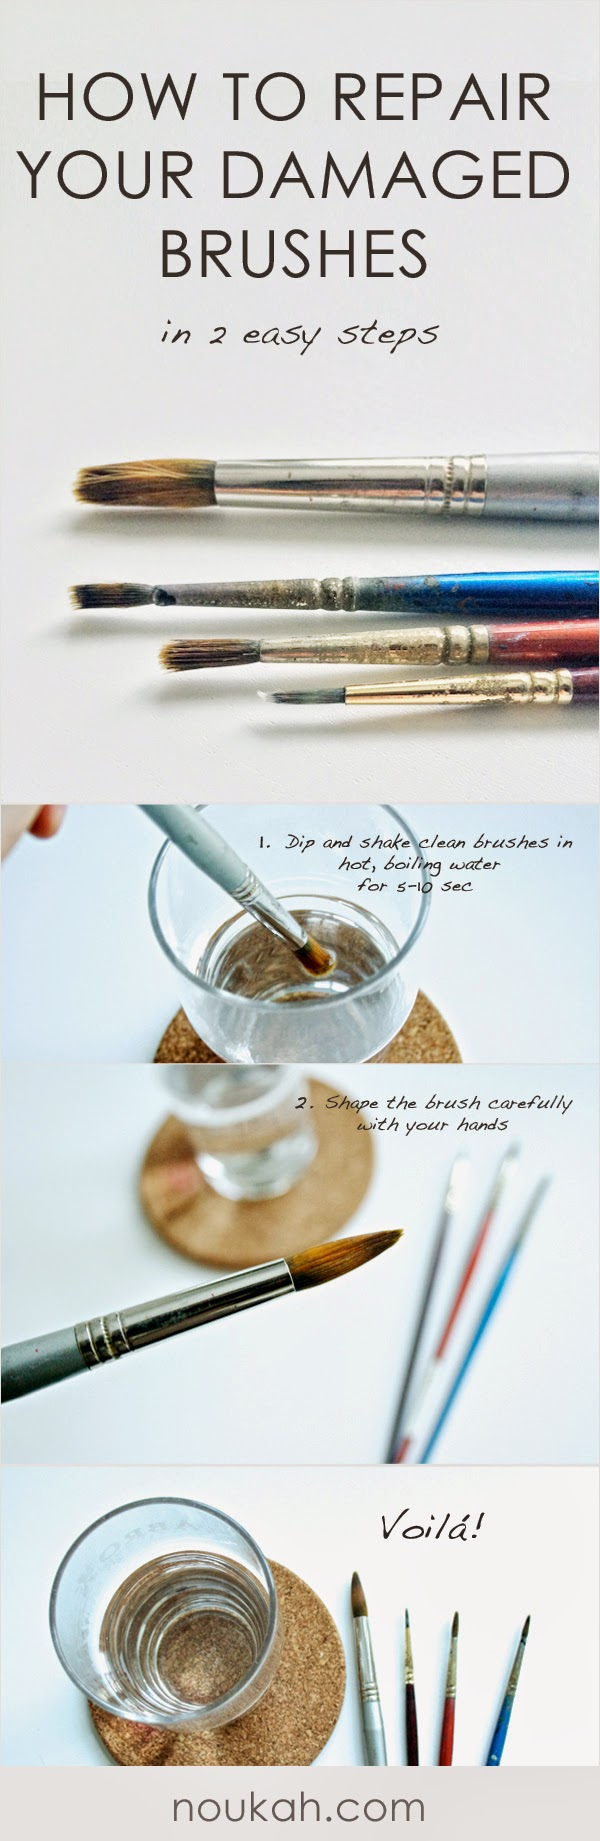 How to repair damaged paint brushes